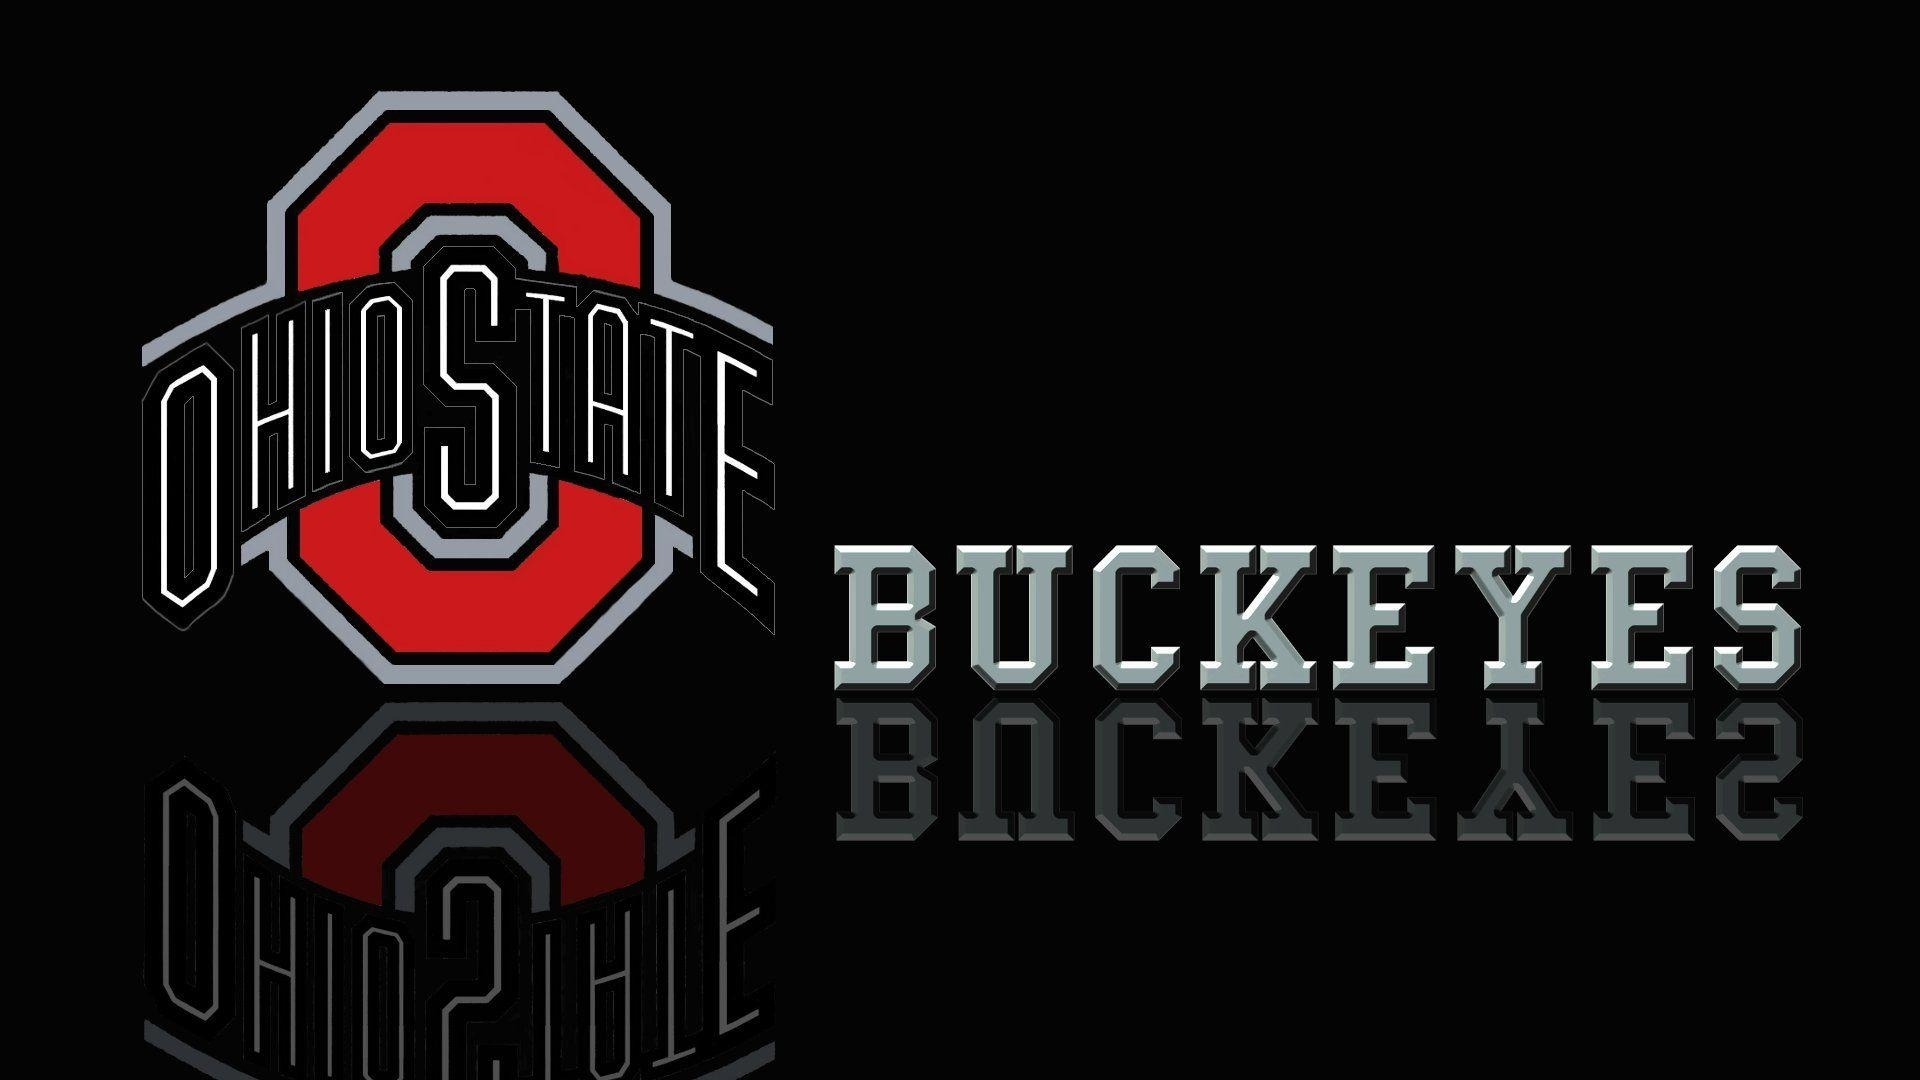 ohio state buckeyes backgrounds - wallpaper cave